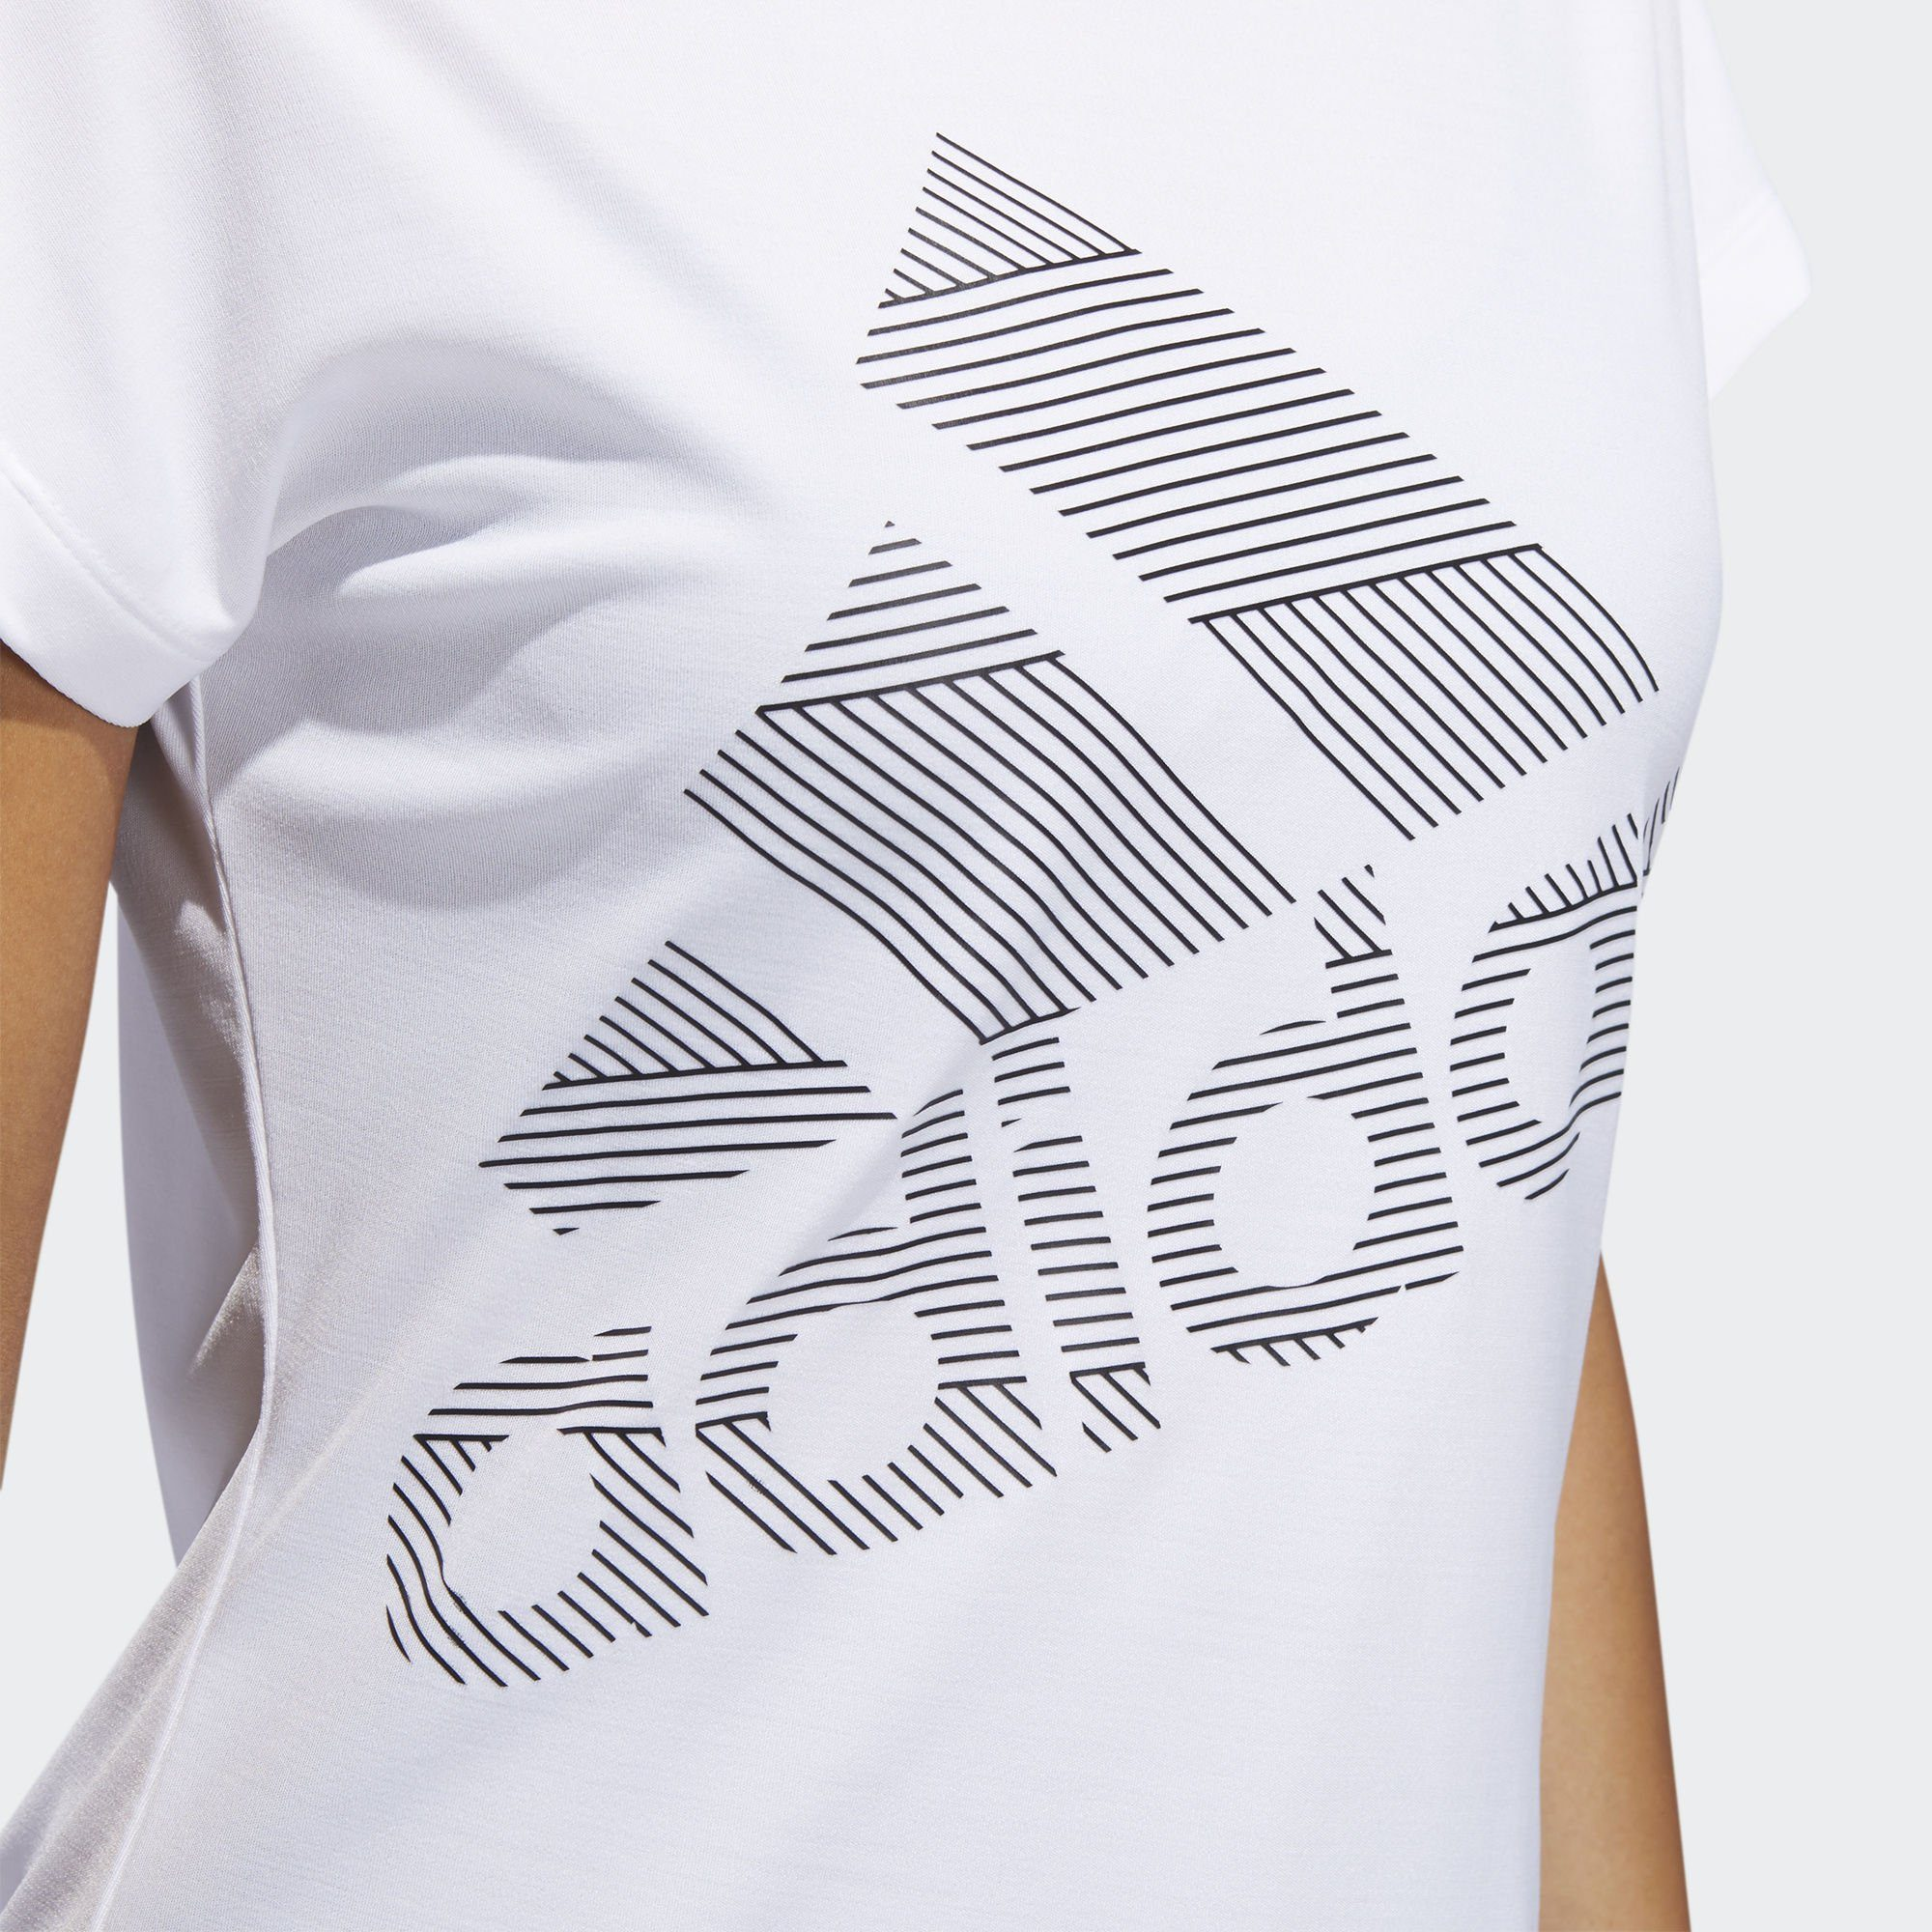 »badge T Adidas Kaufen Of shirt T Online Performance Sport Clima shirt« BWrdCxeo